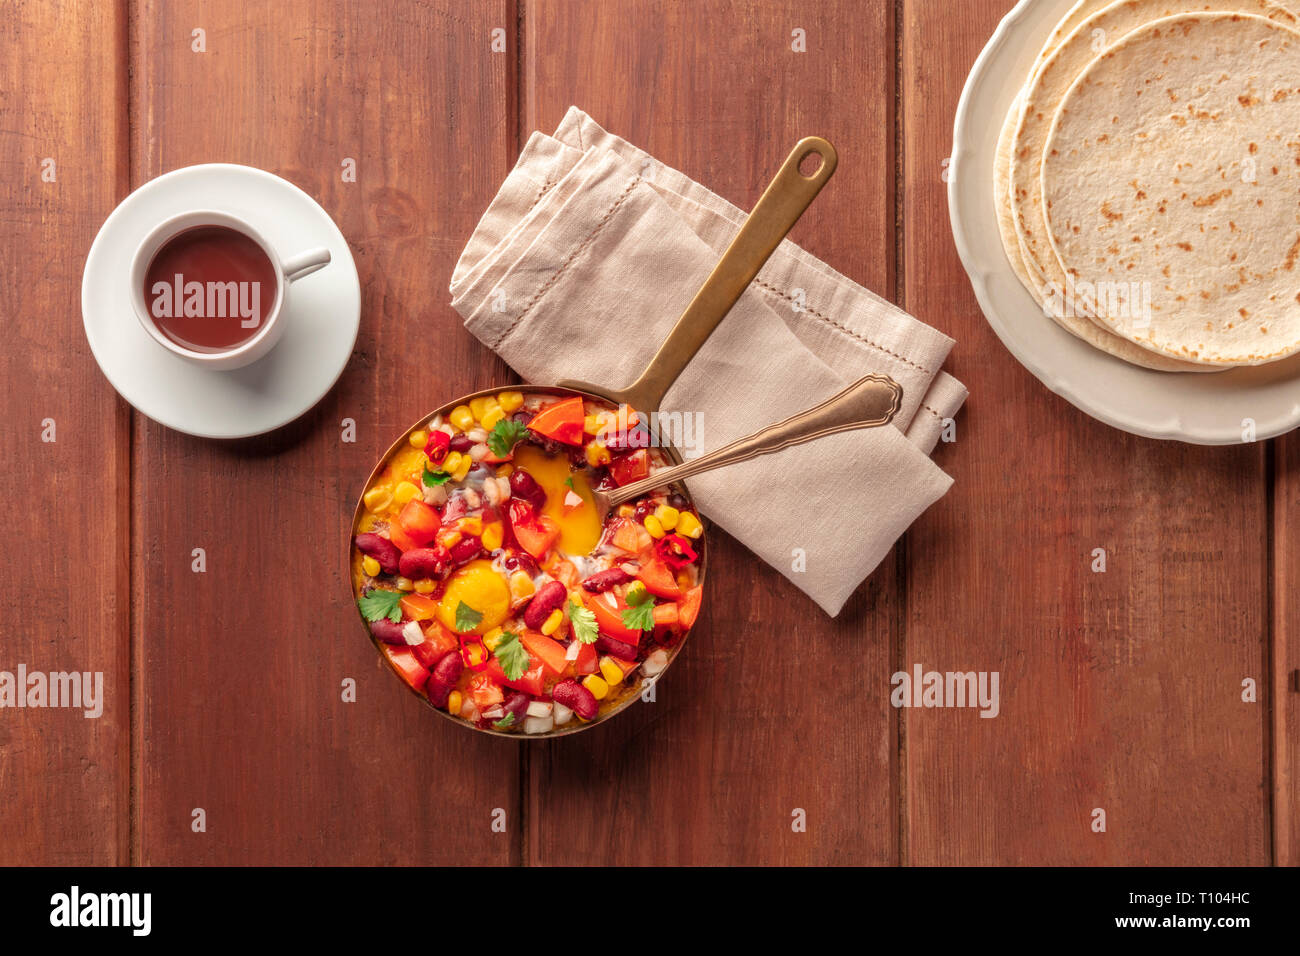 Mexican breakfast food. Huevos rancheros, baked eggs, shot from the top with pico de gallo salad, hot chocolate, and tortillas - Stock Image